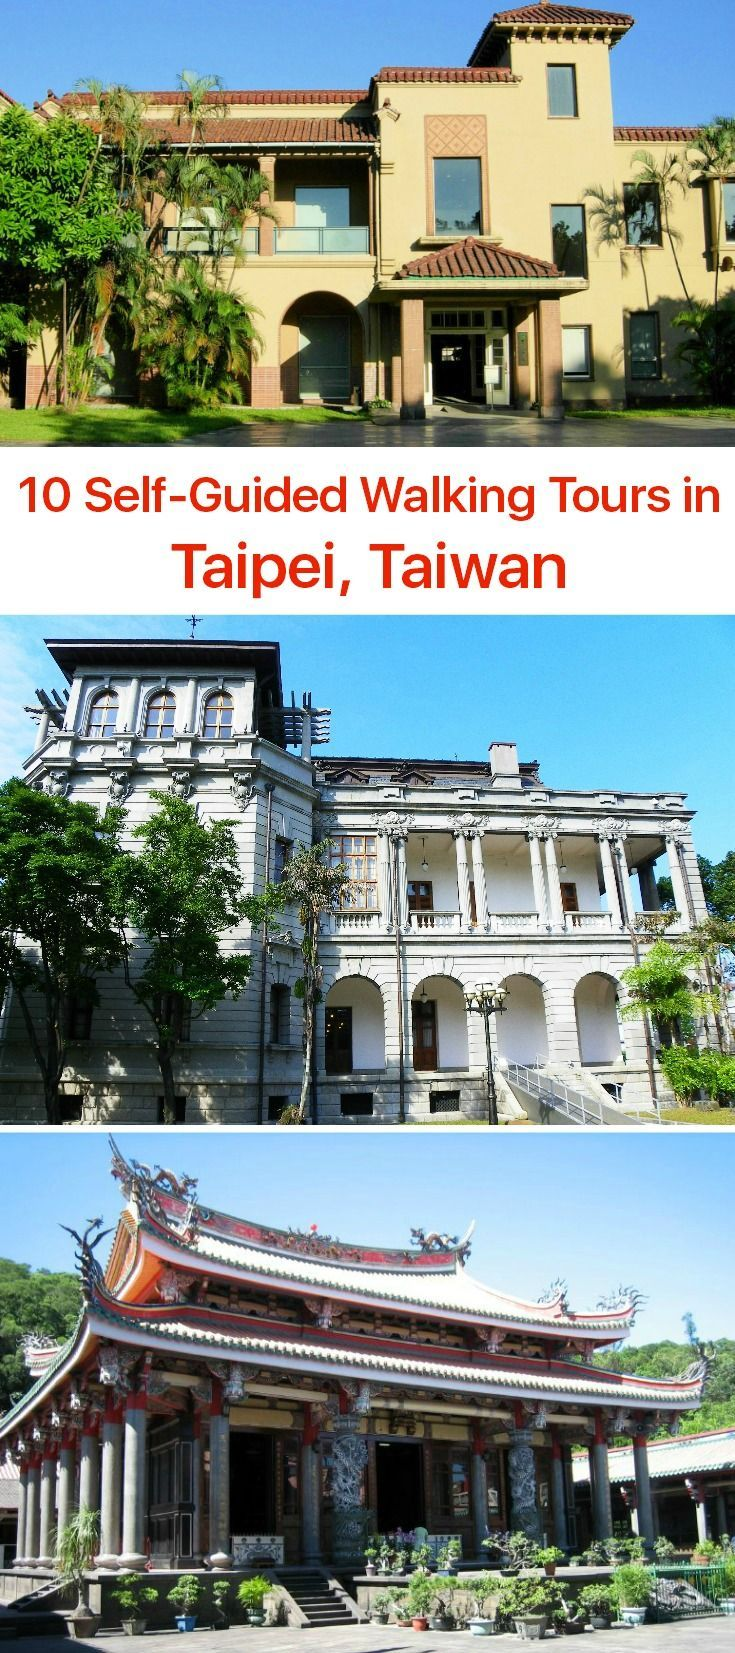 The capital of Taiwan,Taipei, is a bustling metropolis